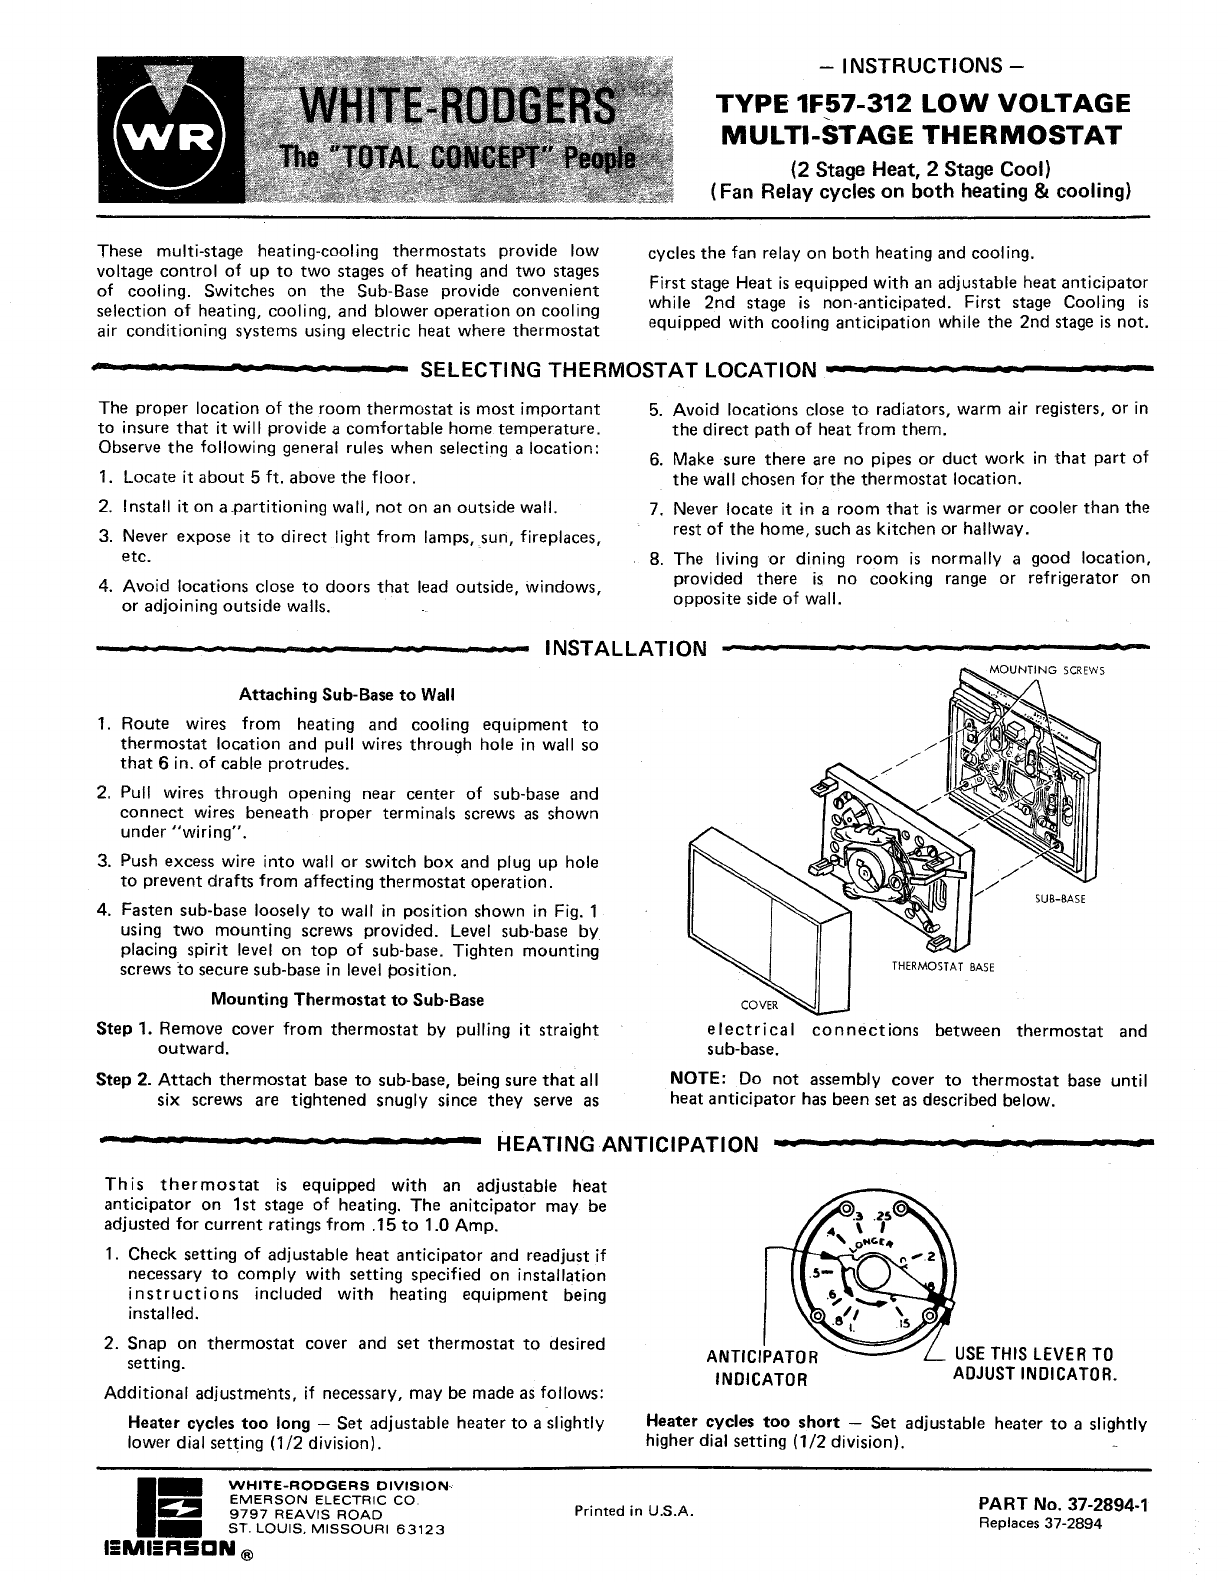 White Rodgers 1F57-312 Thermostat User Manual